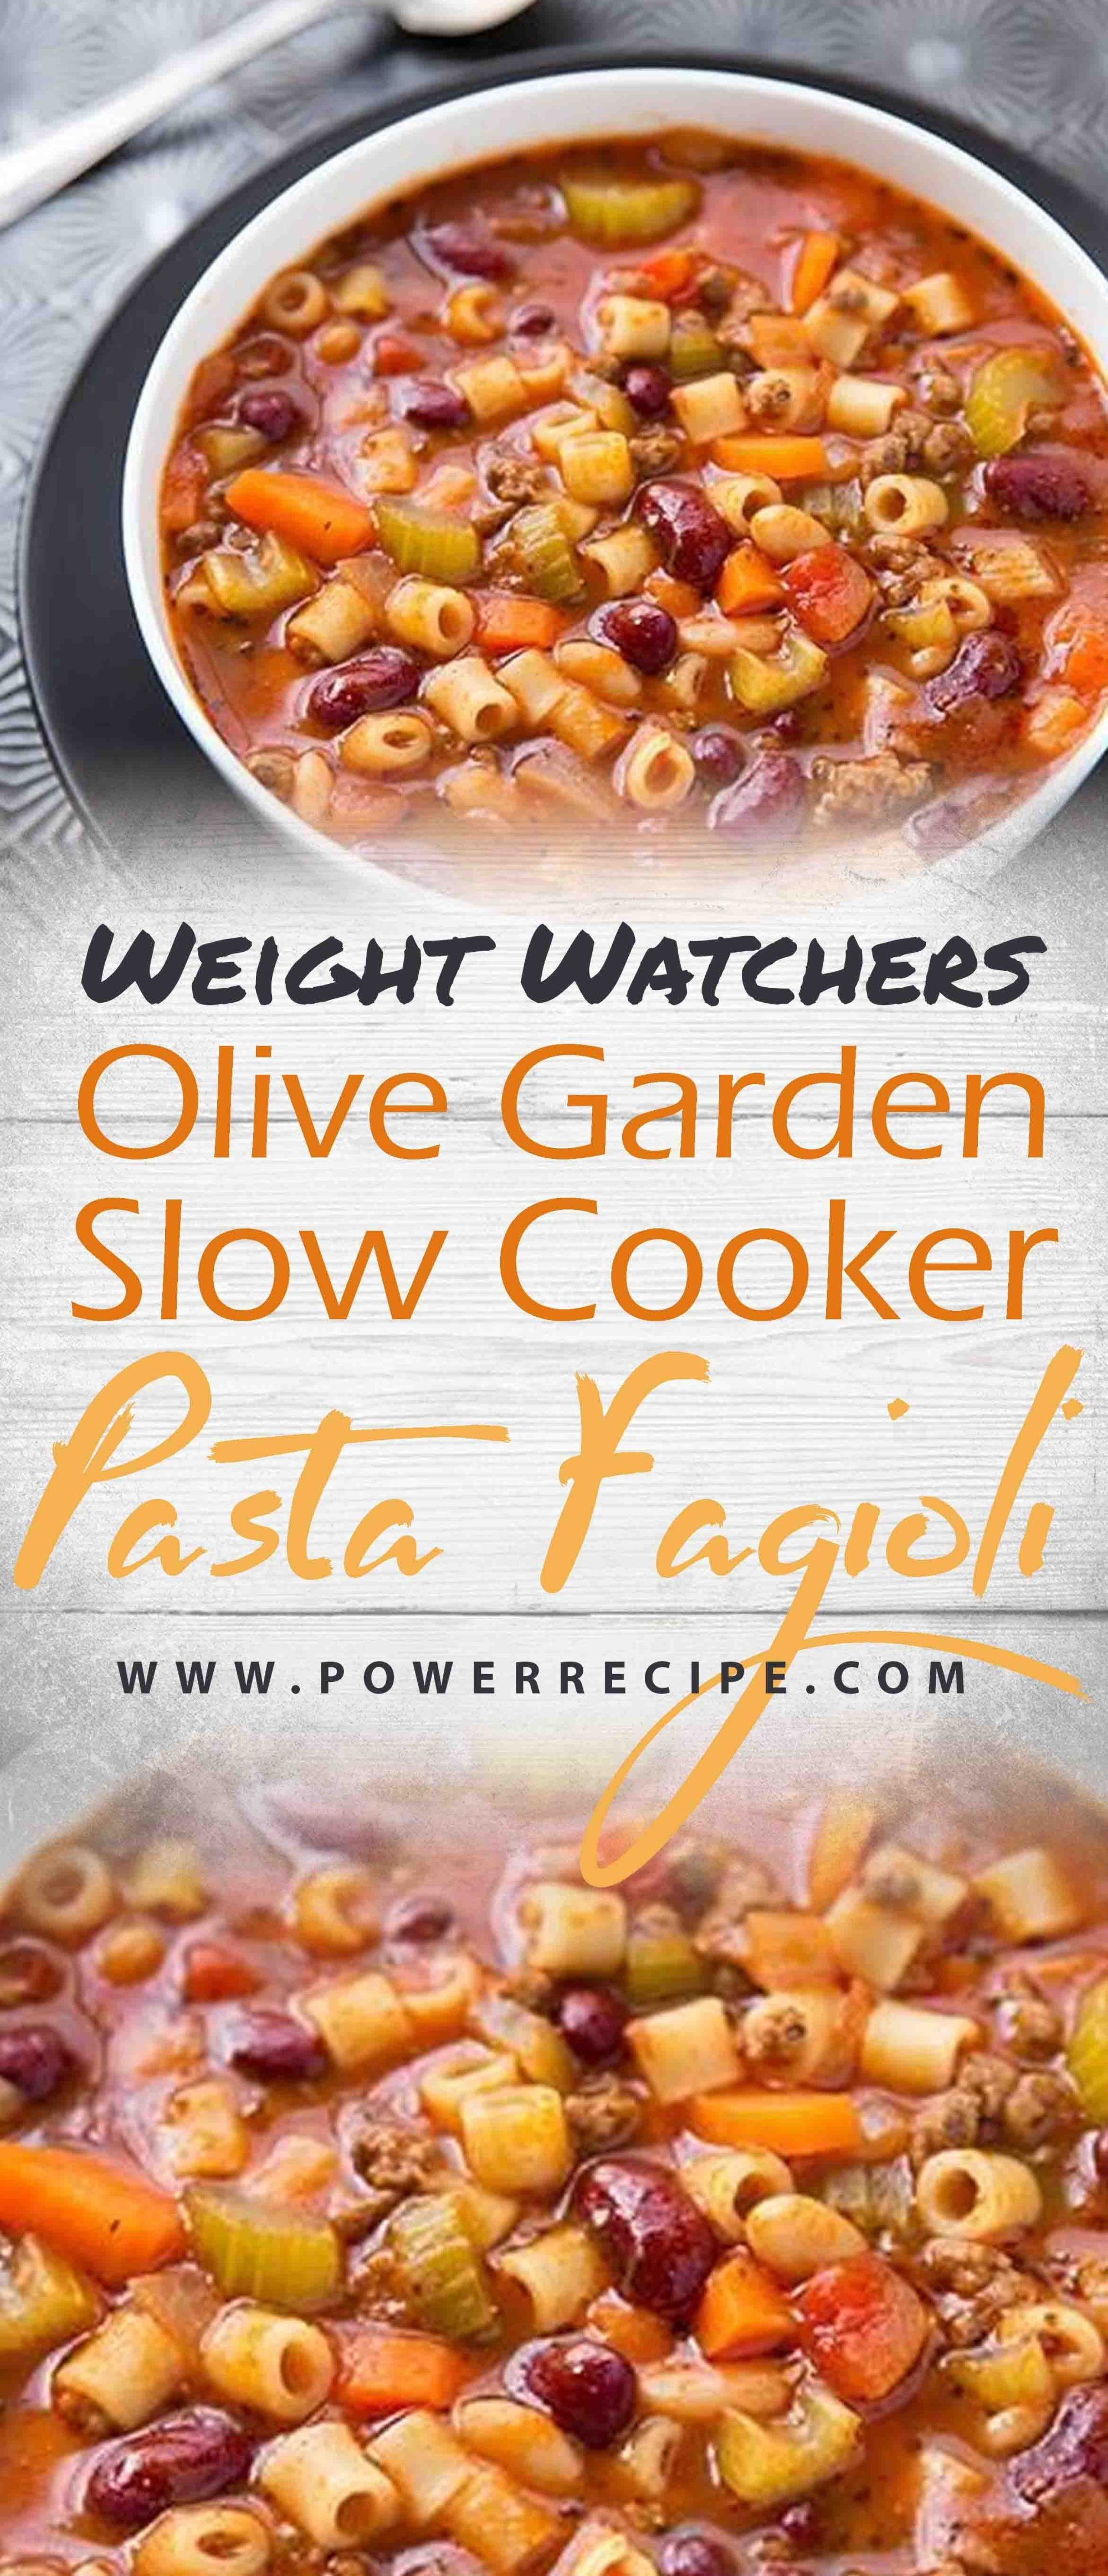 Olive garden slow cooker pasta fagioli recipe all about - Low calorie meals at olive garden ...